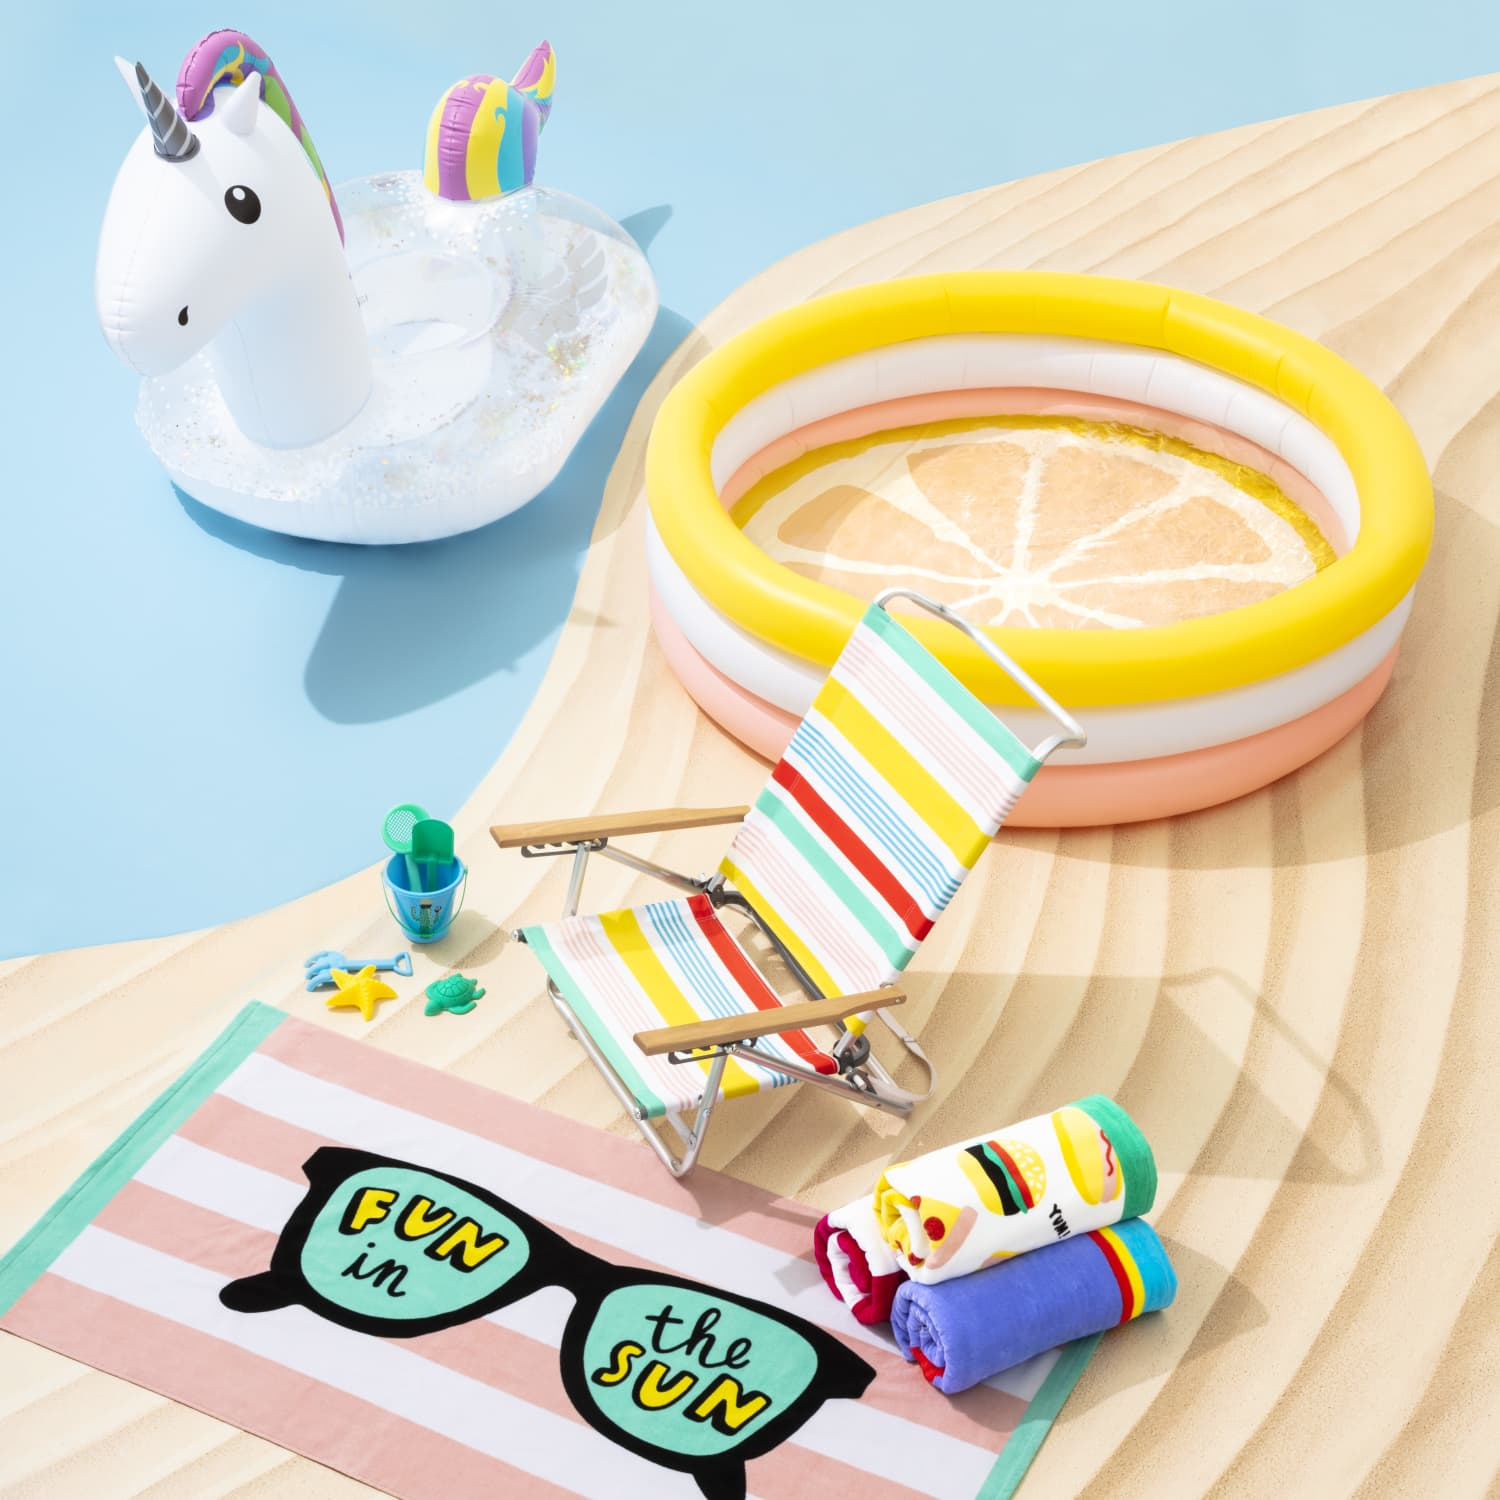 Target's New Seasonal Brand Has Everything You Need For the Best Summer Ever